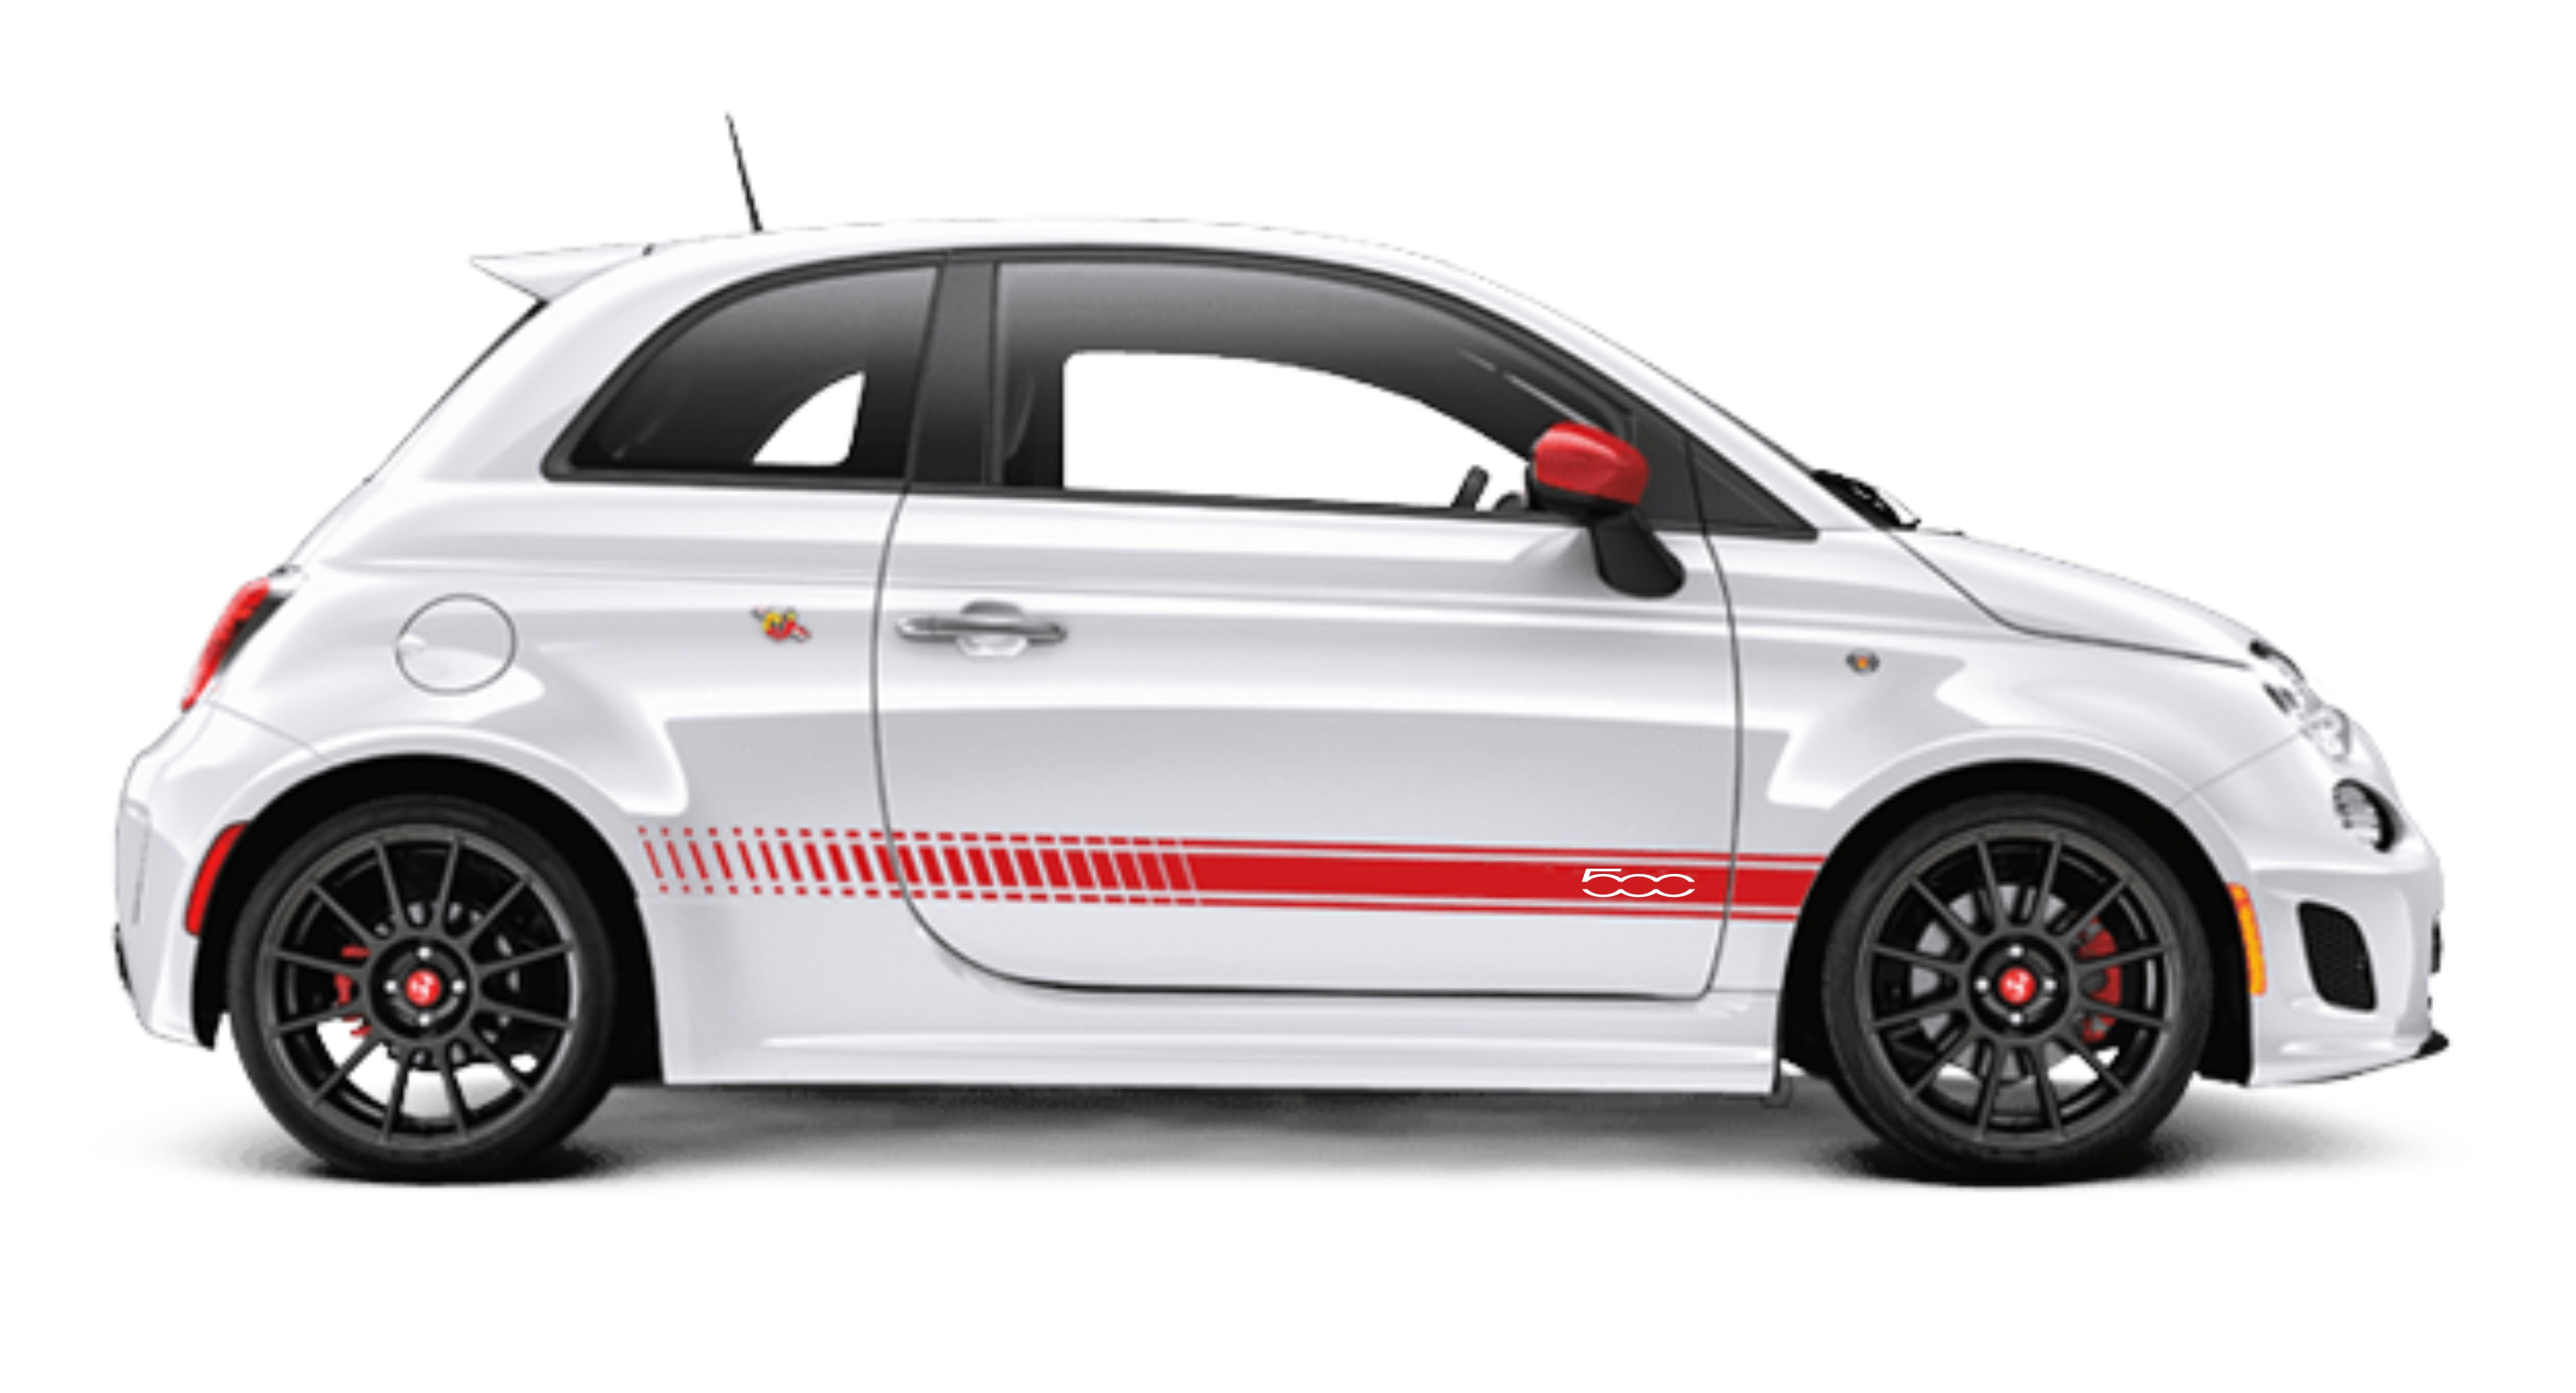 Fiat 500 custom side stripes decal stickers free post uk seller quick despatch